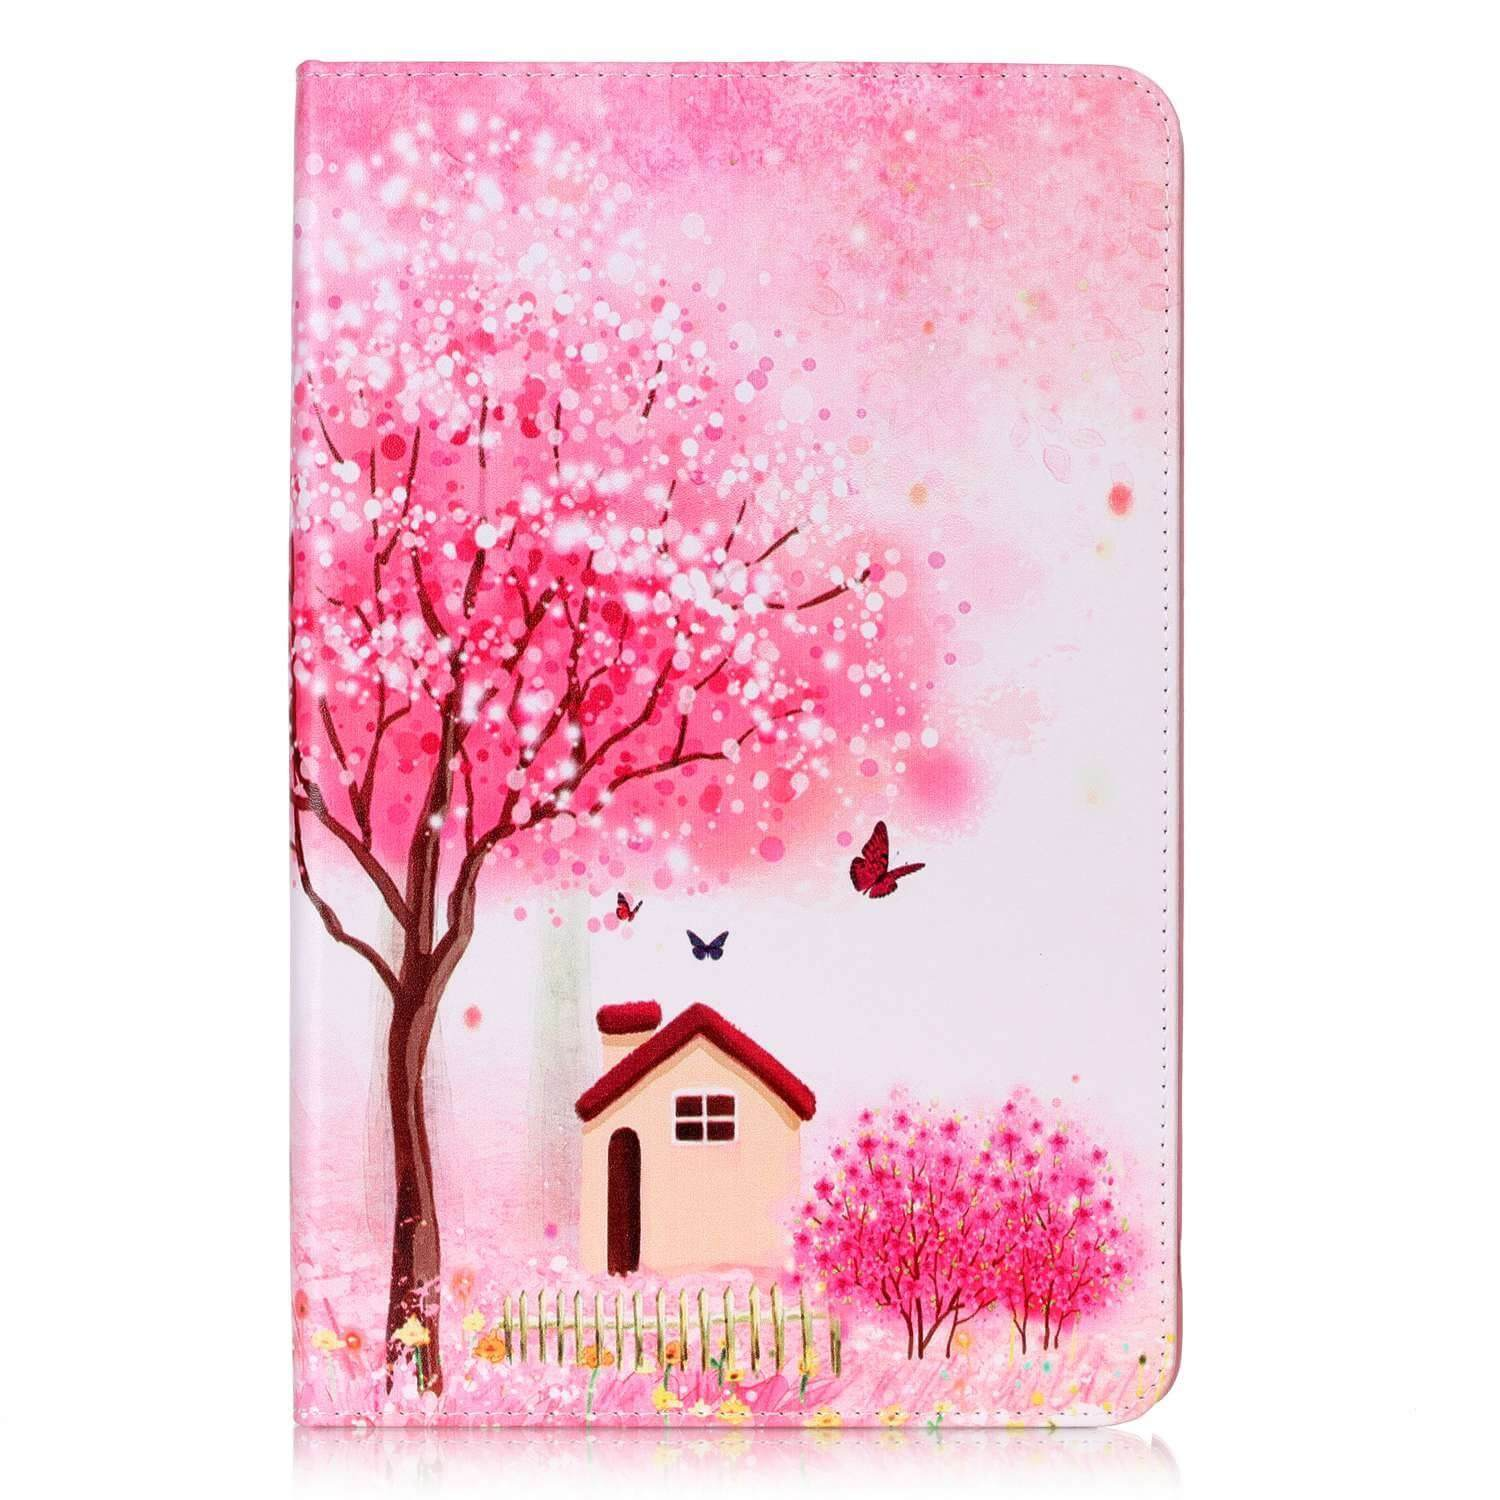 galaxy tab a 10 1 s pen 2016 case with a wide selection of images and 2 stand 2: